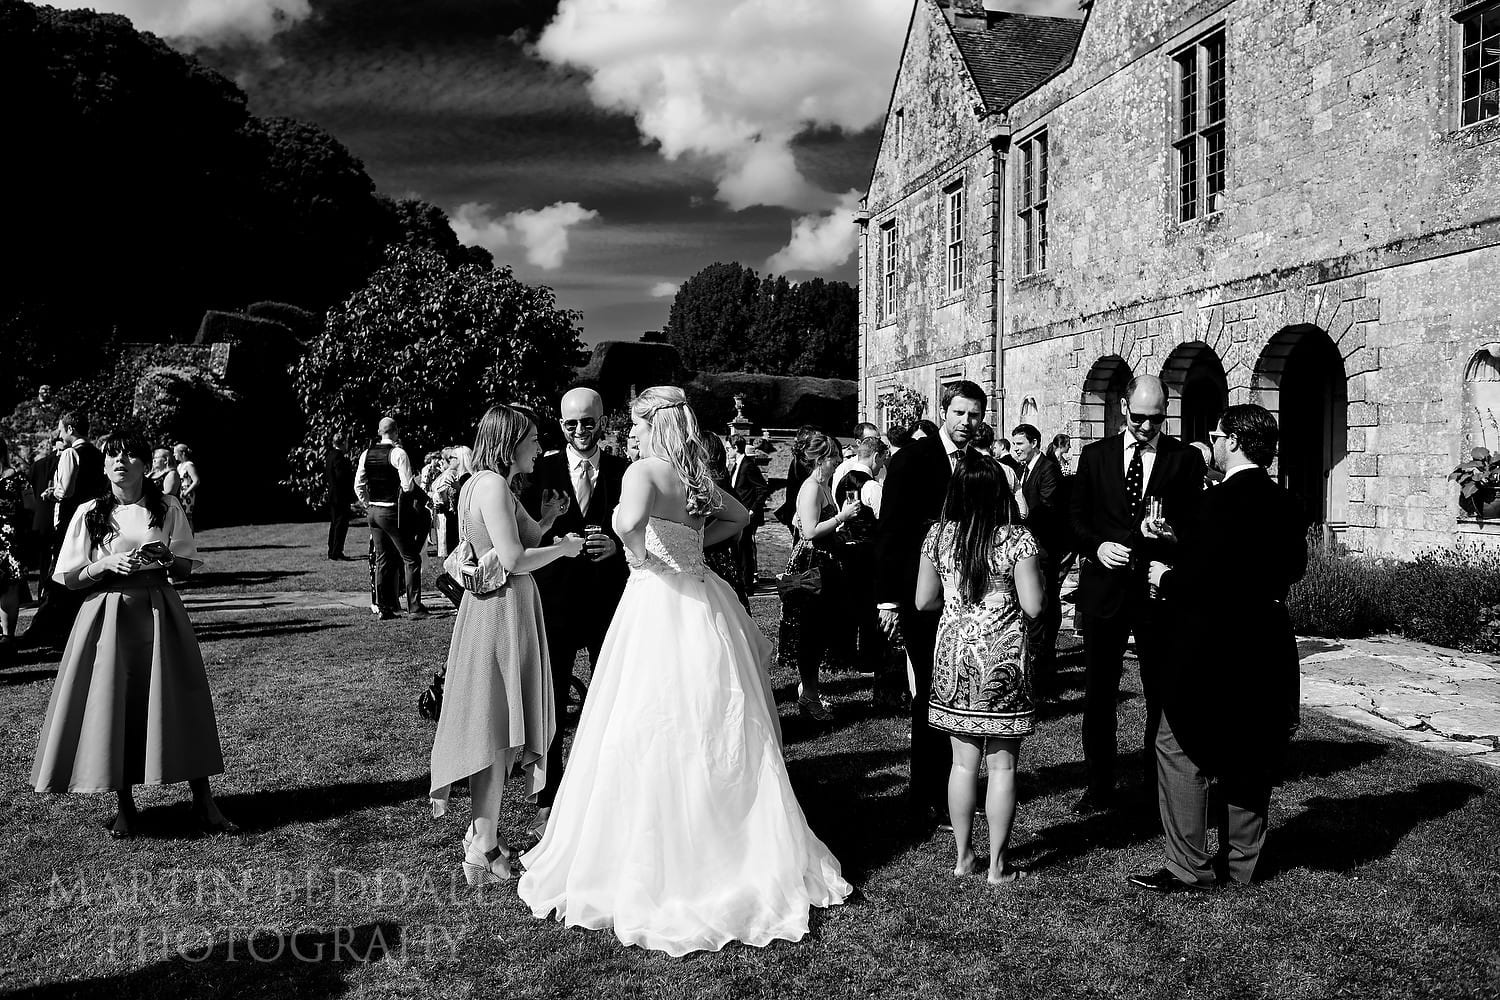 Wedding on the lawn at Hatch House